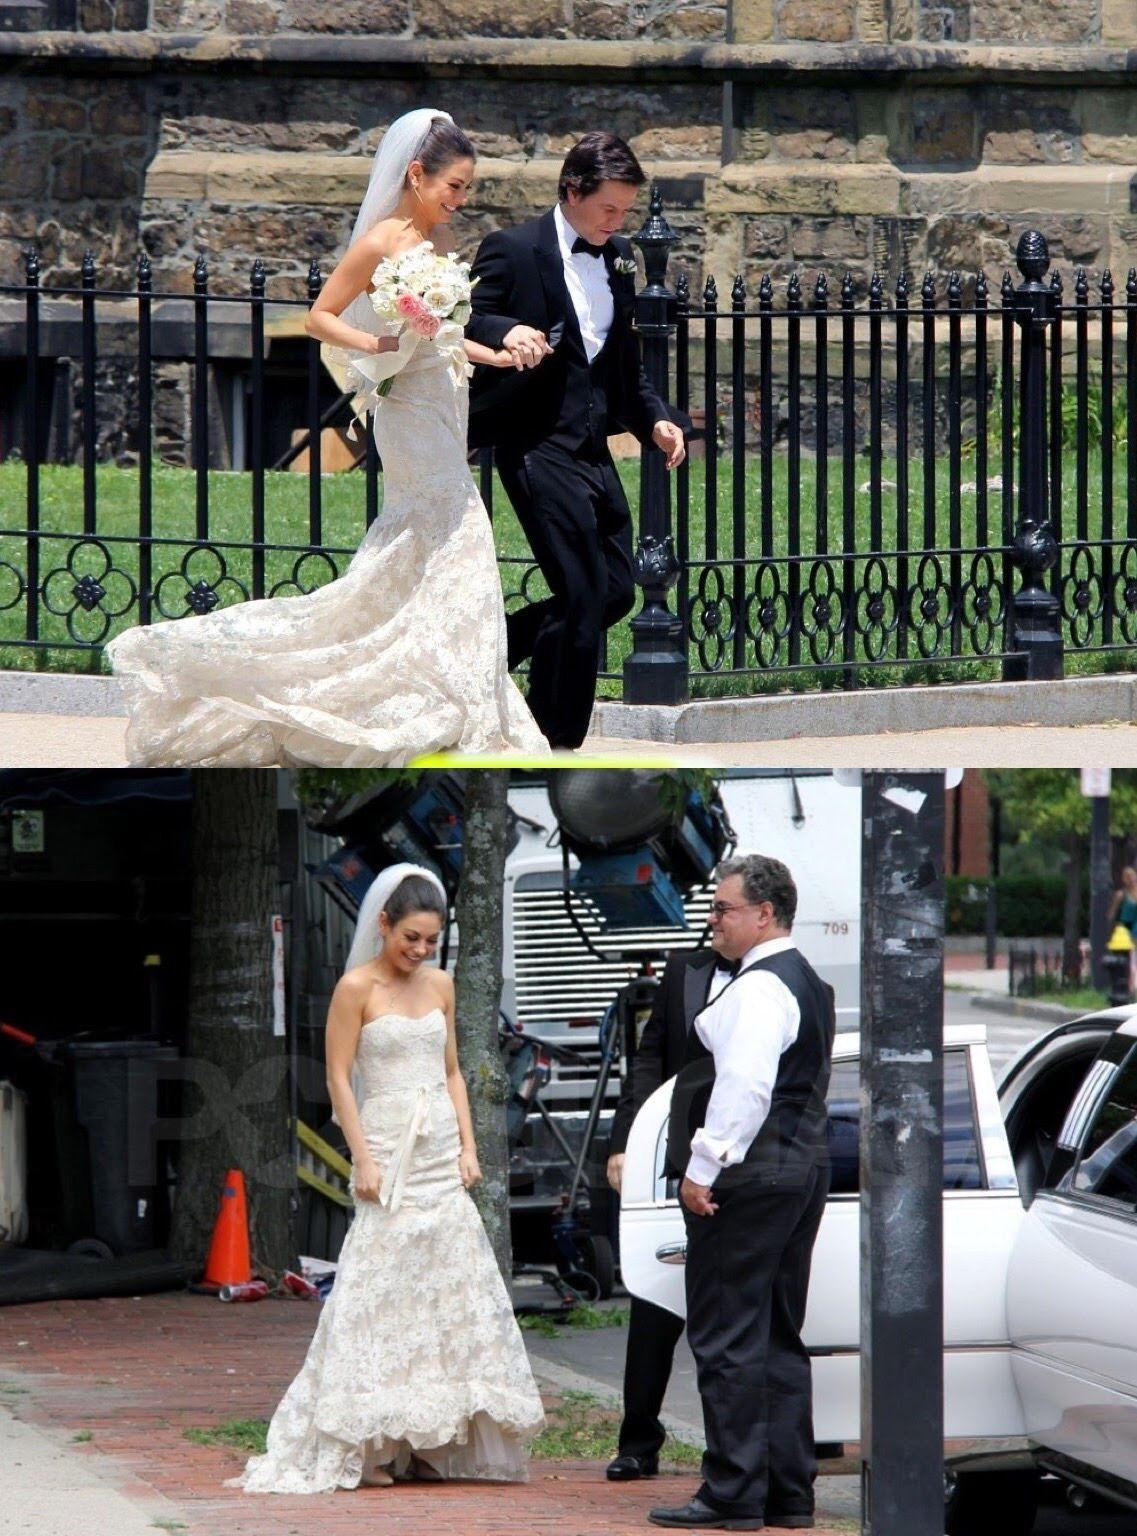 Mila Kunis In Wedding Scene Photo With Actor Mark Wahlberg In Character As Lori Collins In Ted 2012 Wedding Scene Wedding Photos Mermaid Wedding Dress